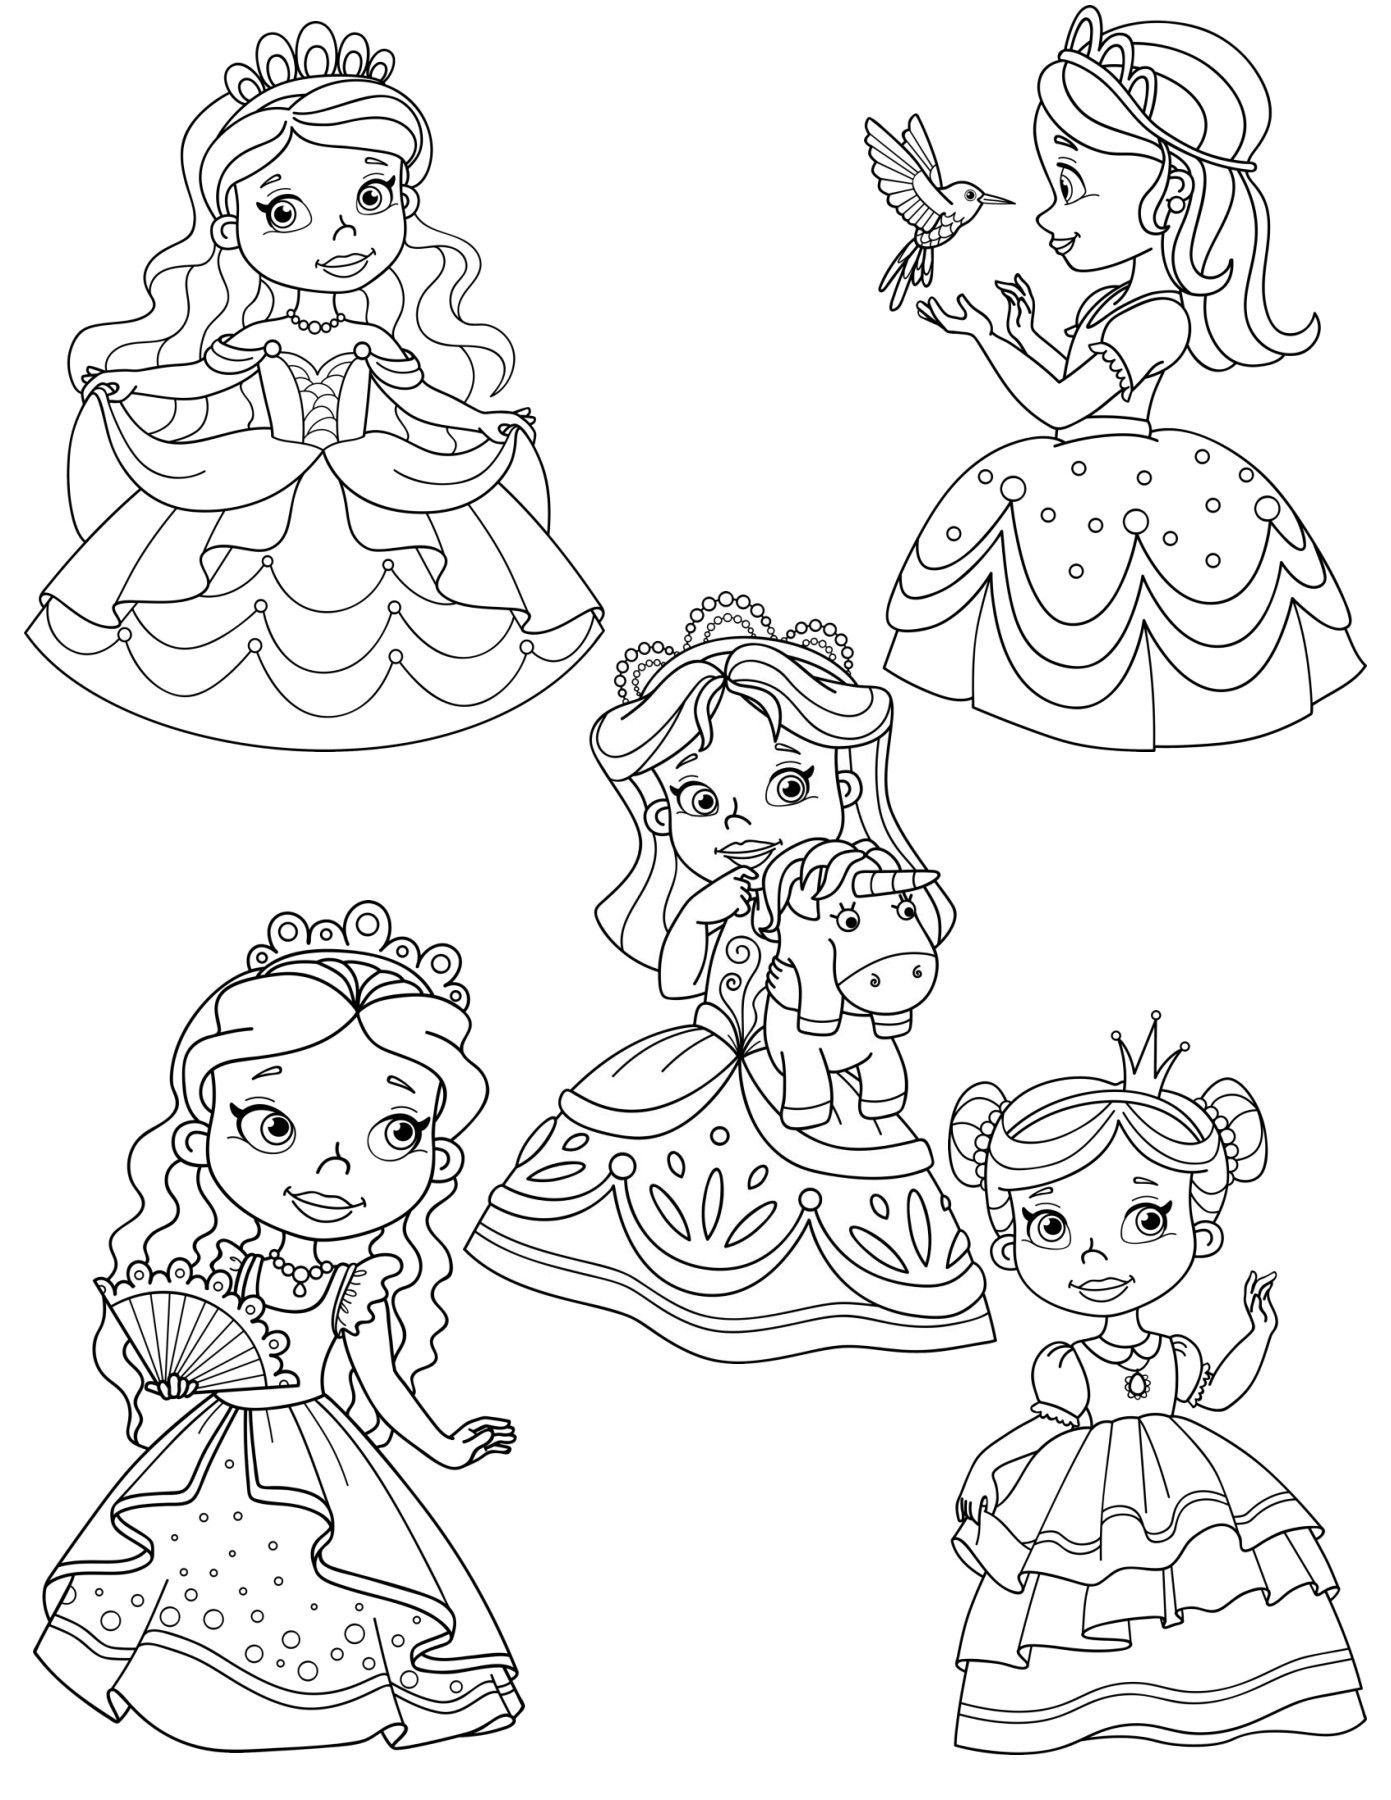 Princess Unicorn Coloring Page Youngandtae Com Unicorn Coloring Pages Coloring Pages Princess Coloring Pages